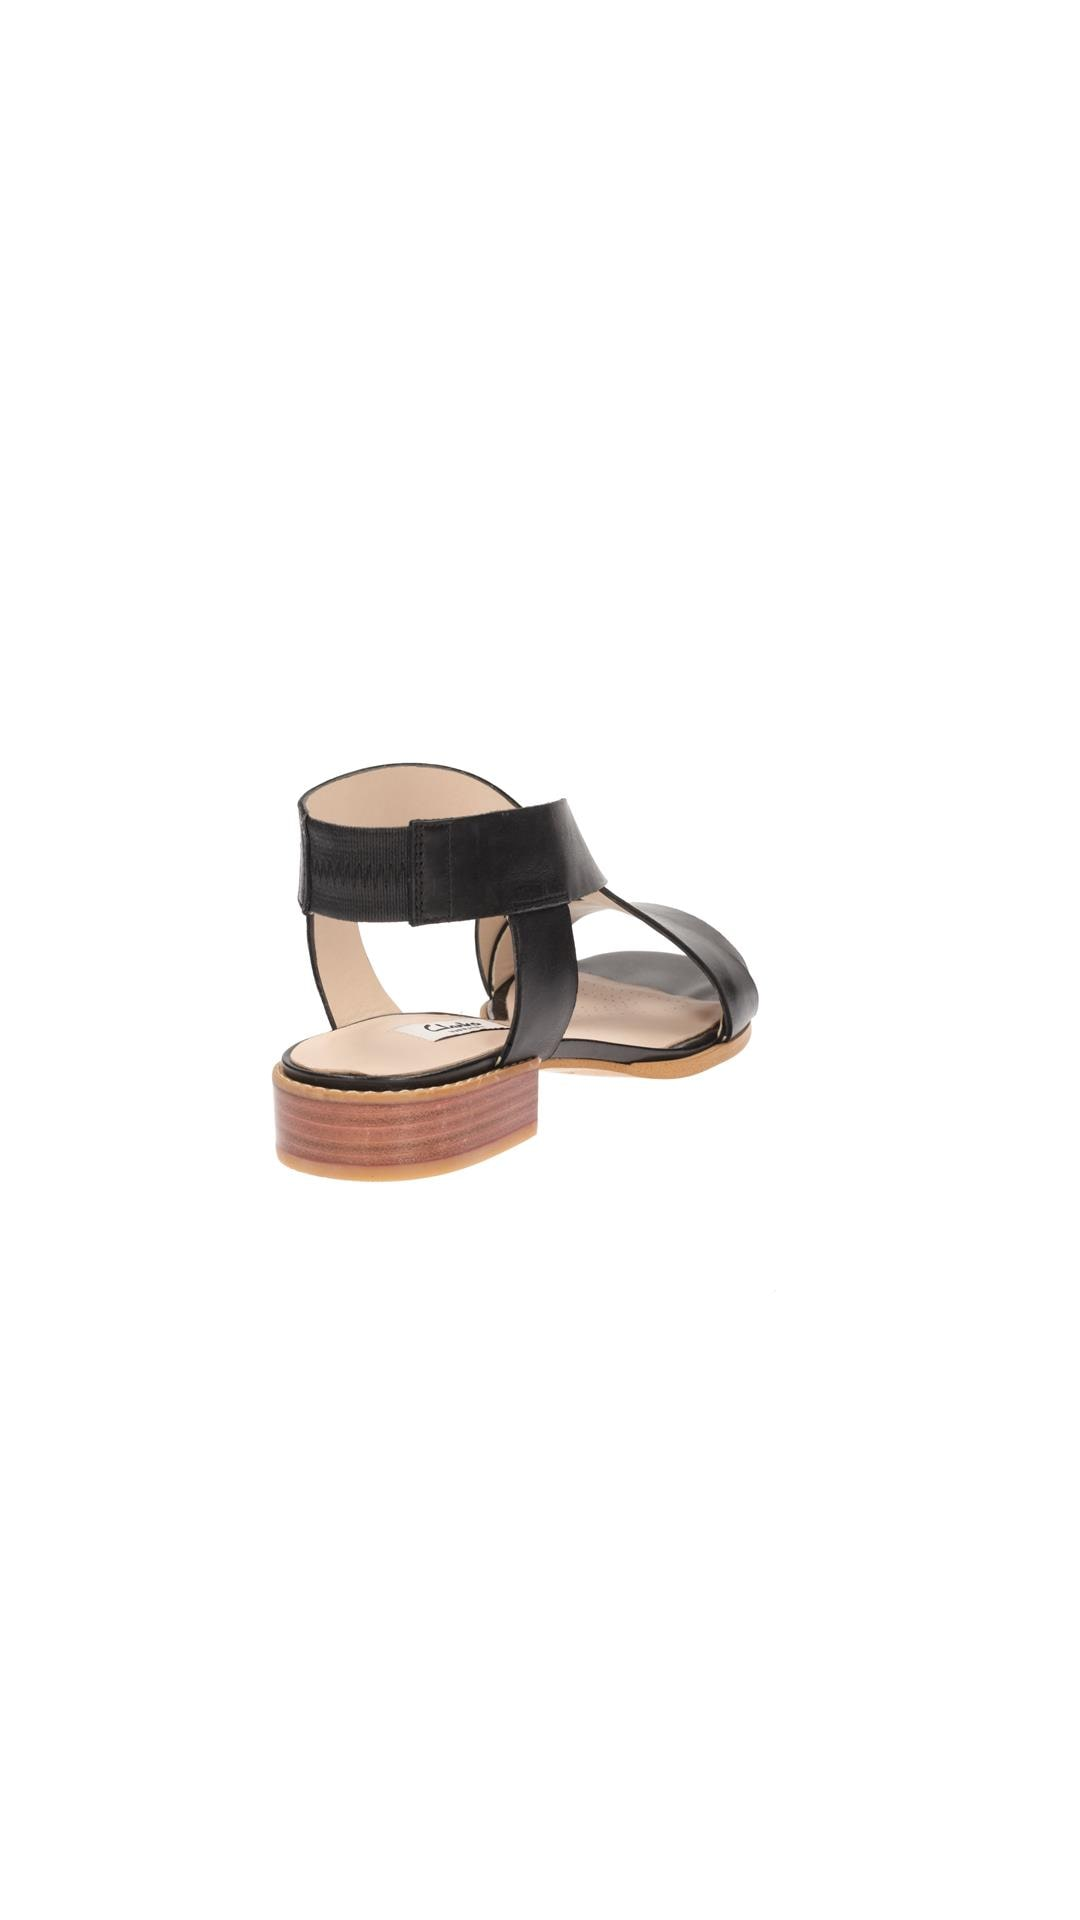 110c94951 Buy Clarks Bliss Meadow Black Leather Women Sandals   Floaters Online at  Low Prices in India - Paytmmall.com